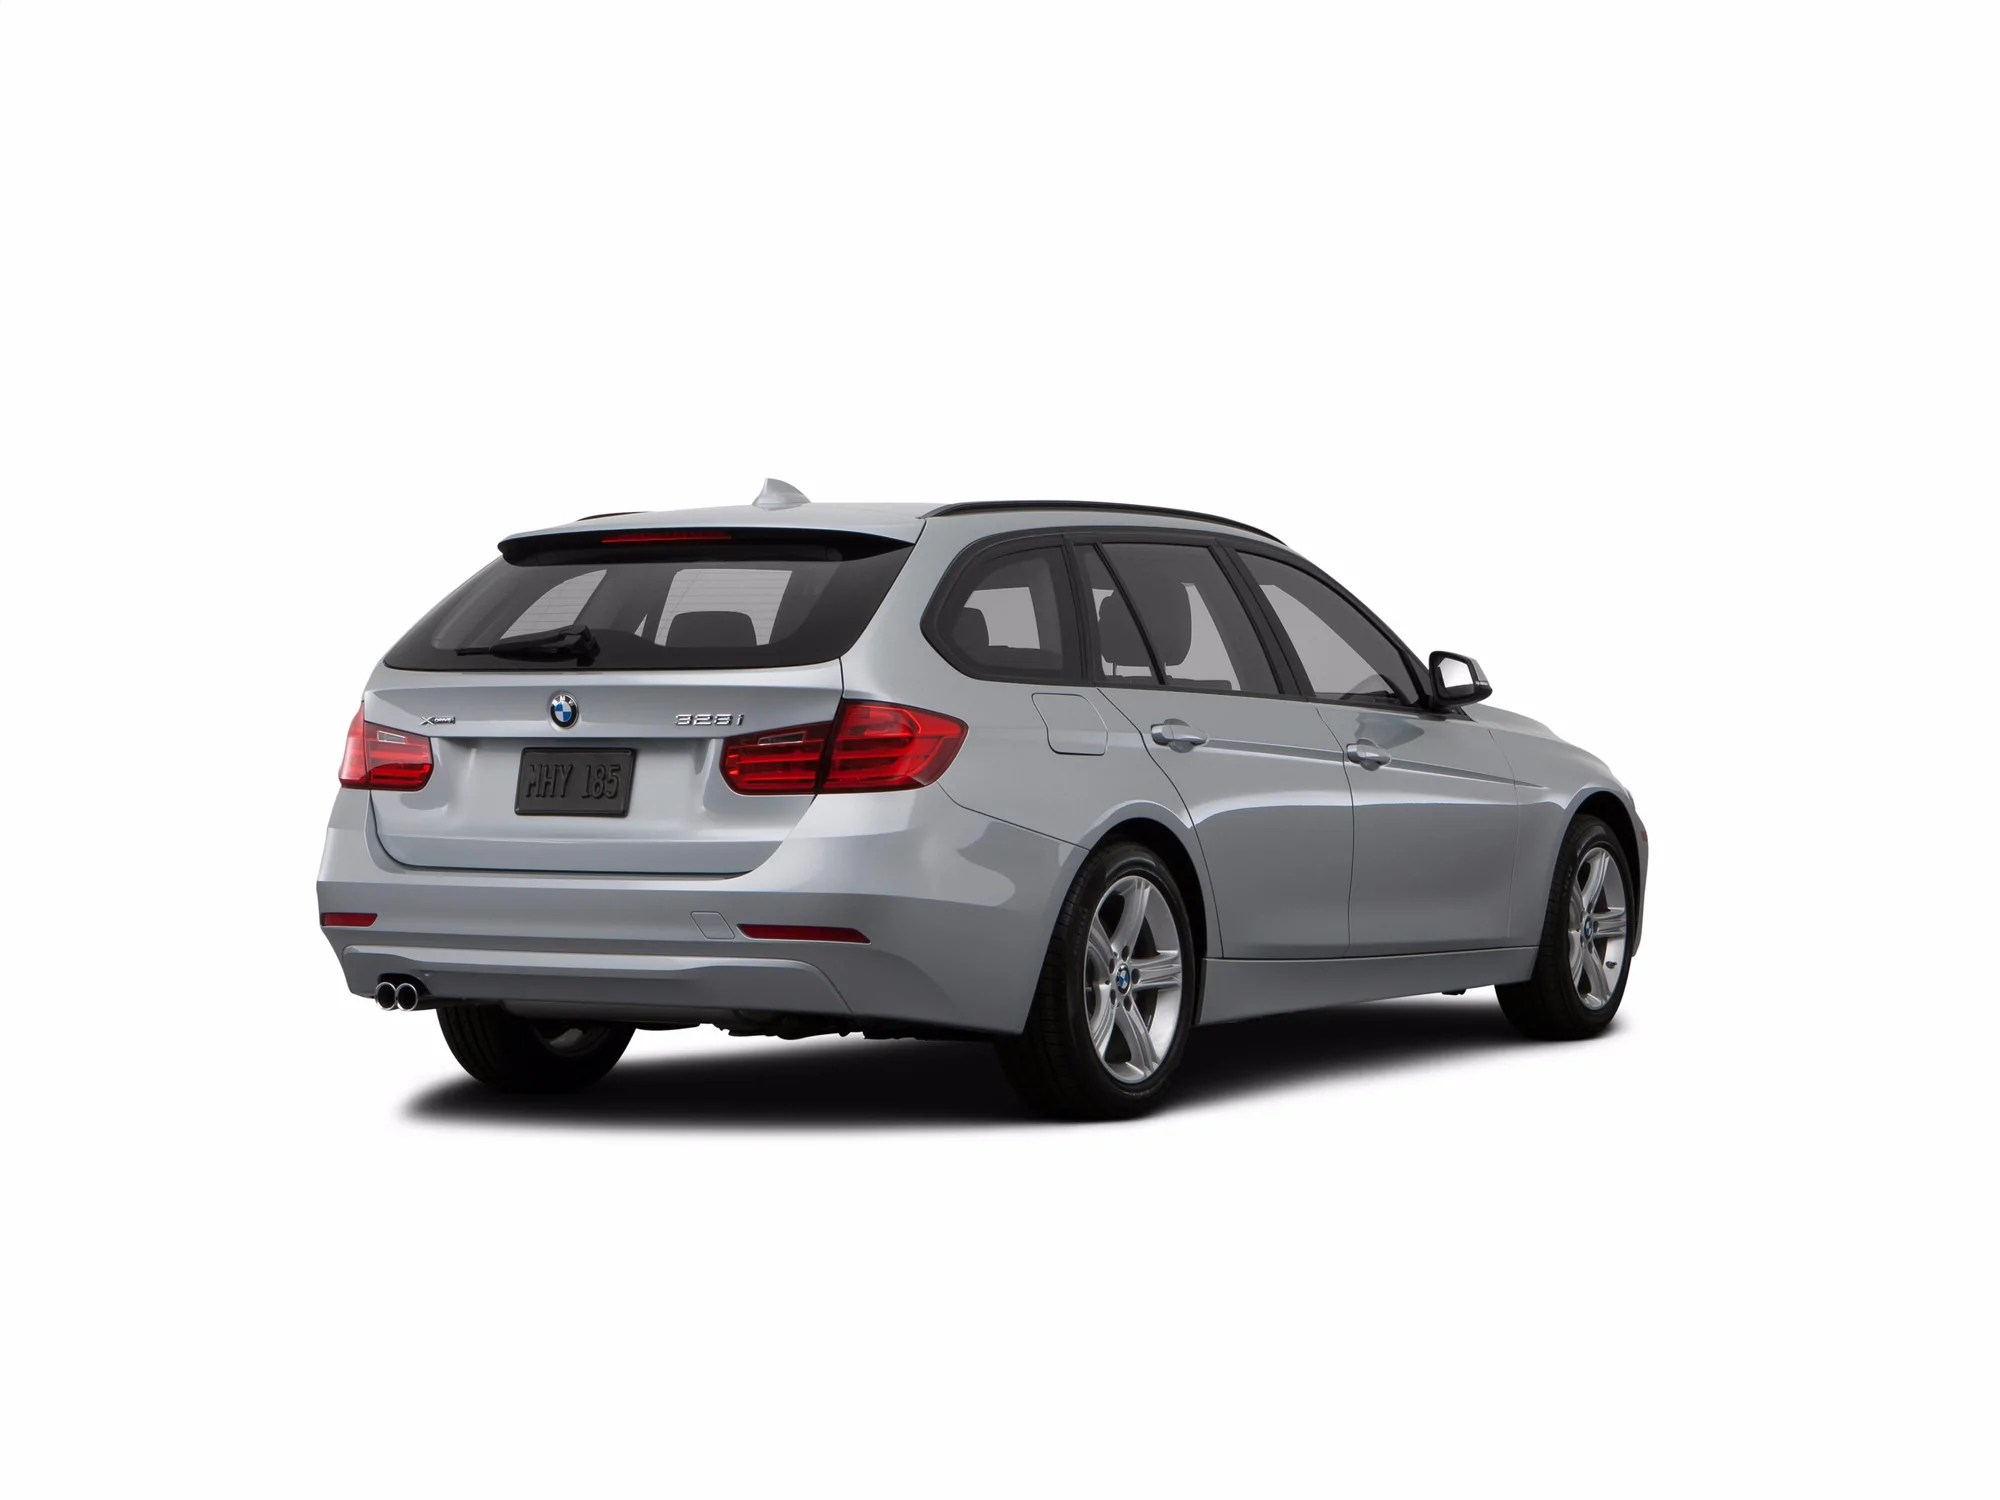 bmw 3 series hitch made to be hidden tailored trailer hitch for bmw 3 series [ 2000 x 1500 Pixel ]